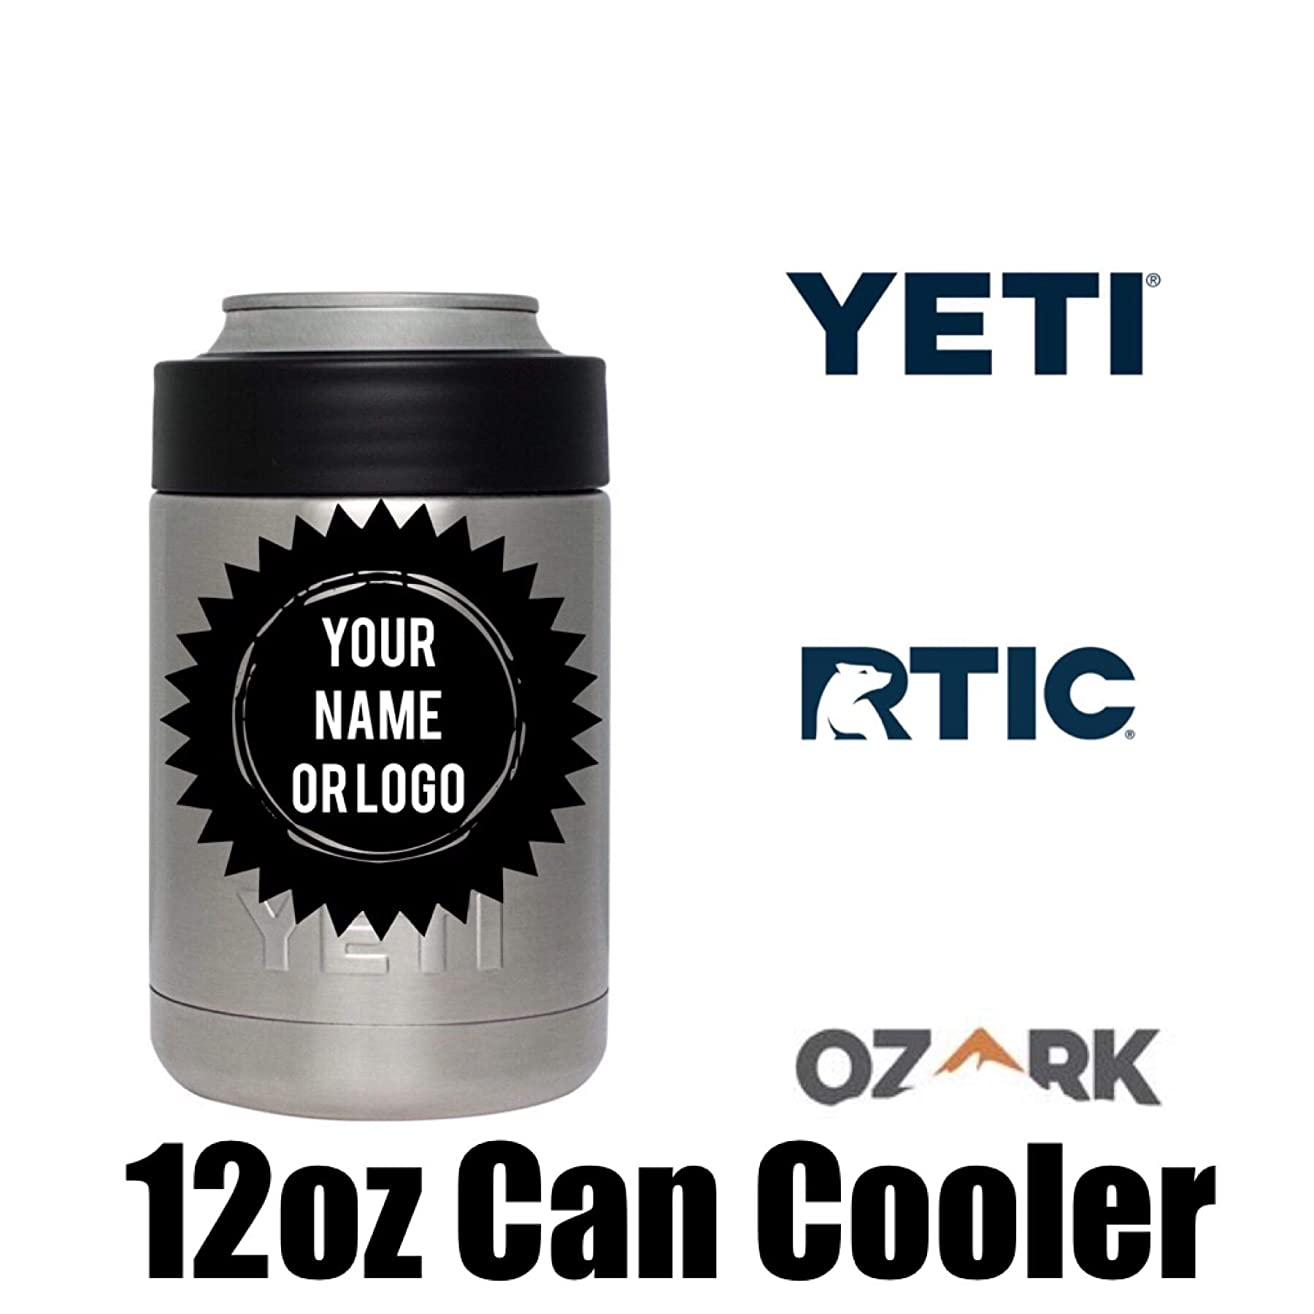 Custom Can Cooler, Multiple Colors & Brands (Yeti, RTIC, Ozark)